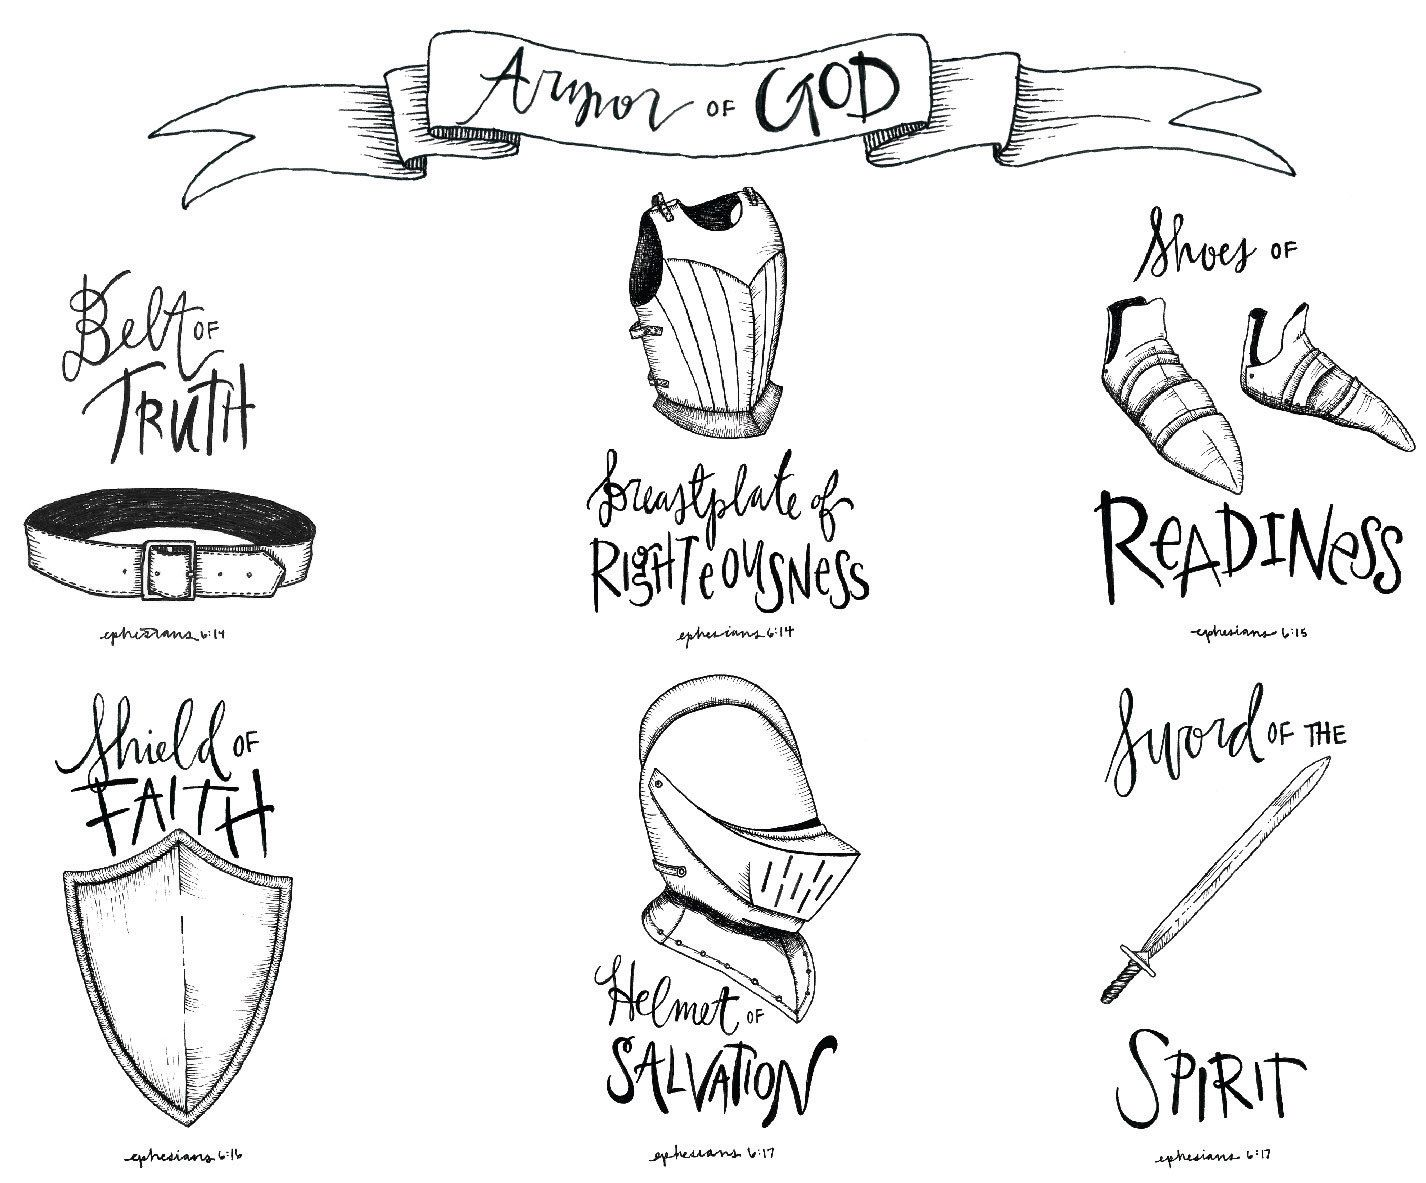 Diagram Of The Armor Of God - DIY Enthusiasts Wiring Diagrams •